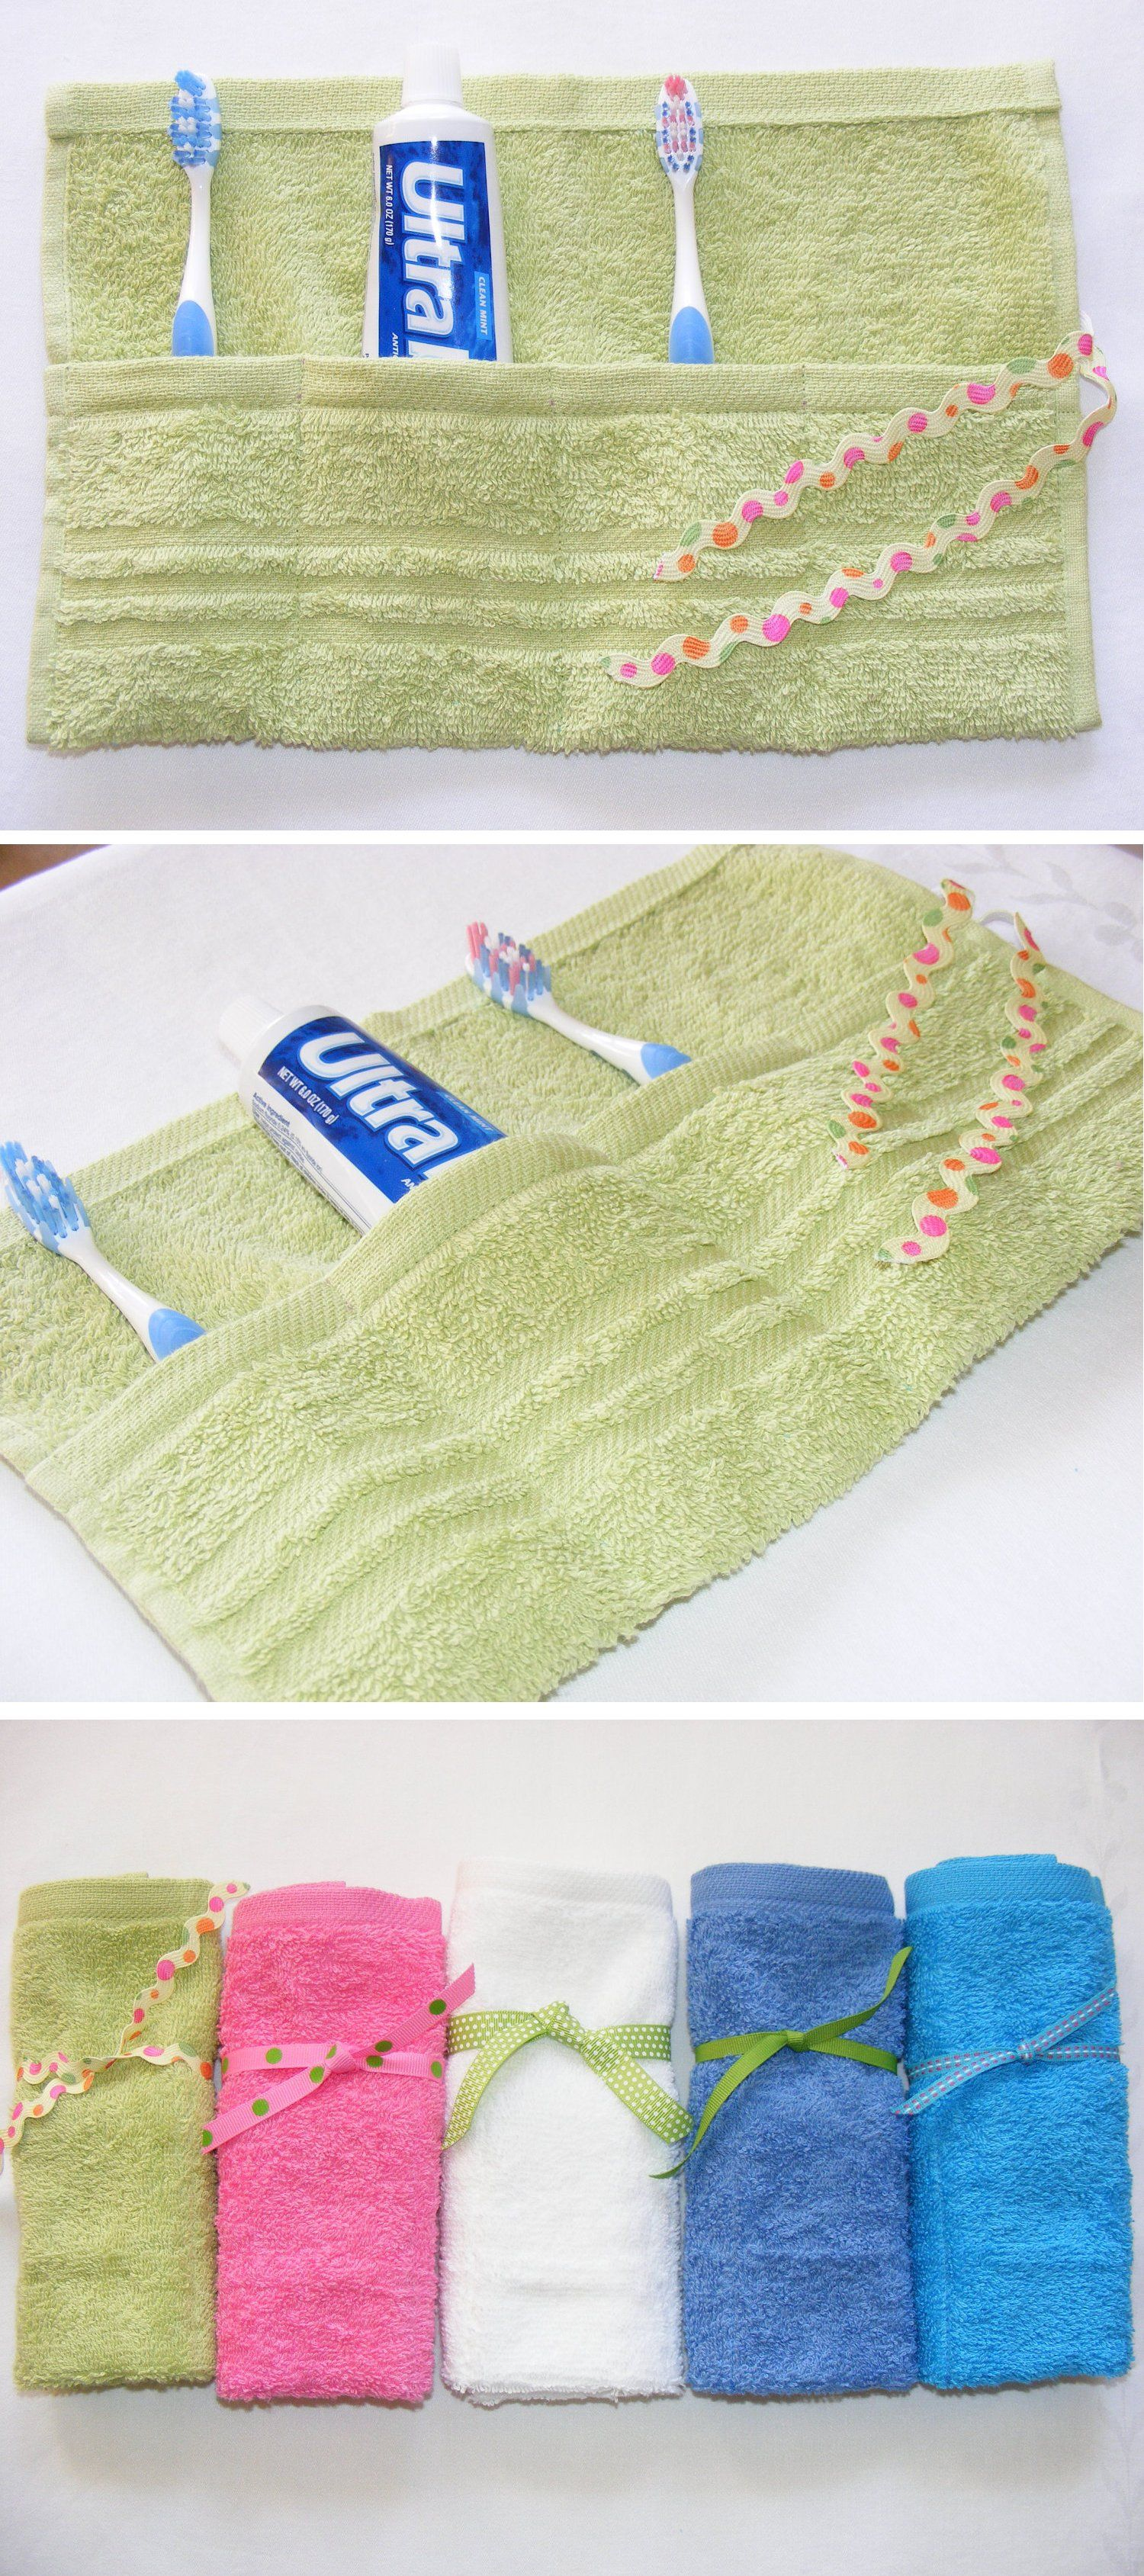 Terry cloth travel kit. Throw the towel in the laundry when you get home from your trip.